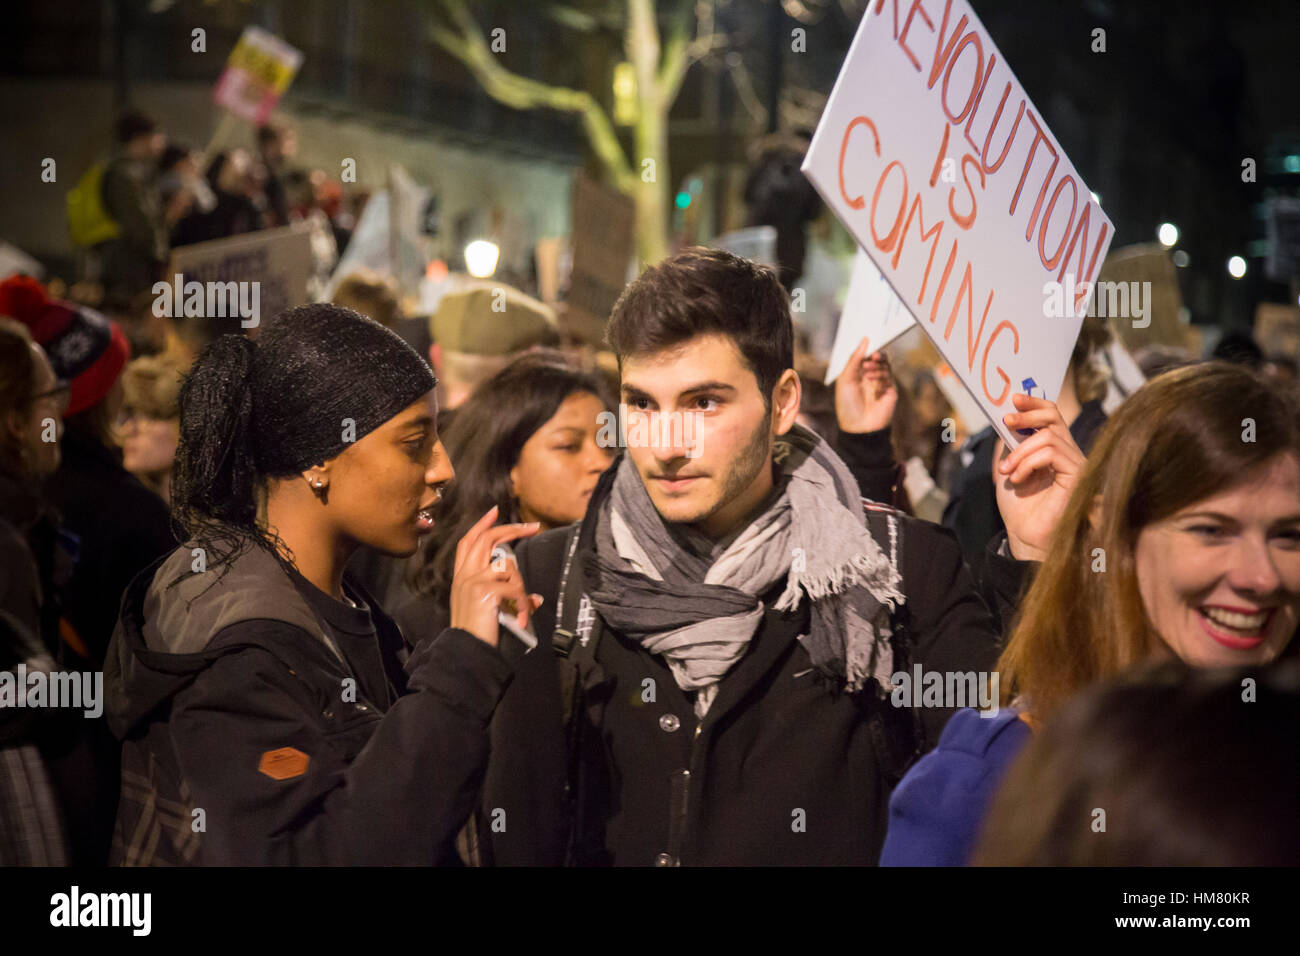 Demonstrators in Whitehall, near Downing Street, protest against US President Trump's entry ban for people from - Stock Image